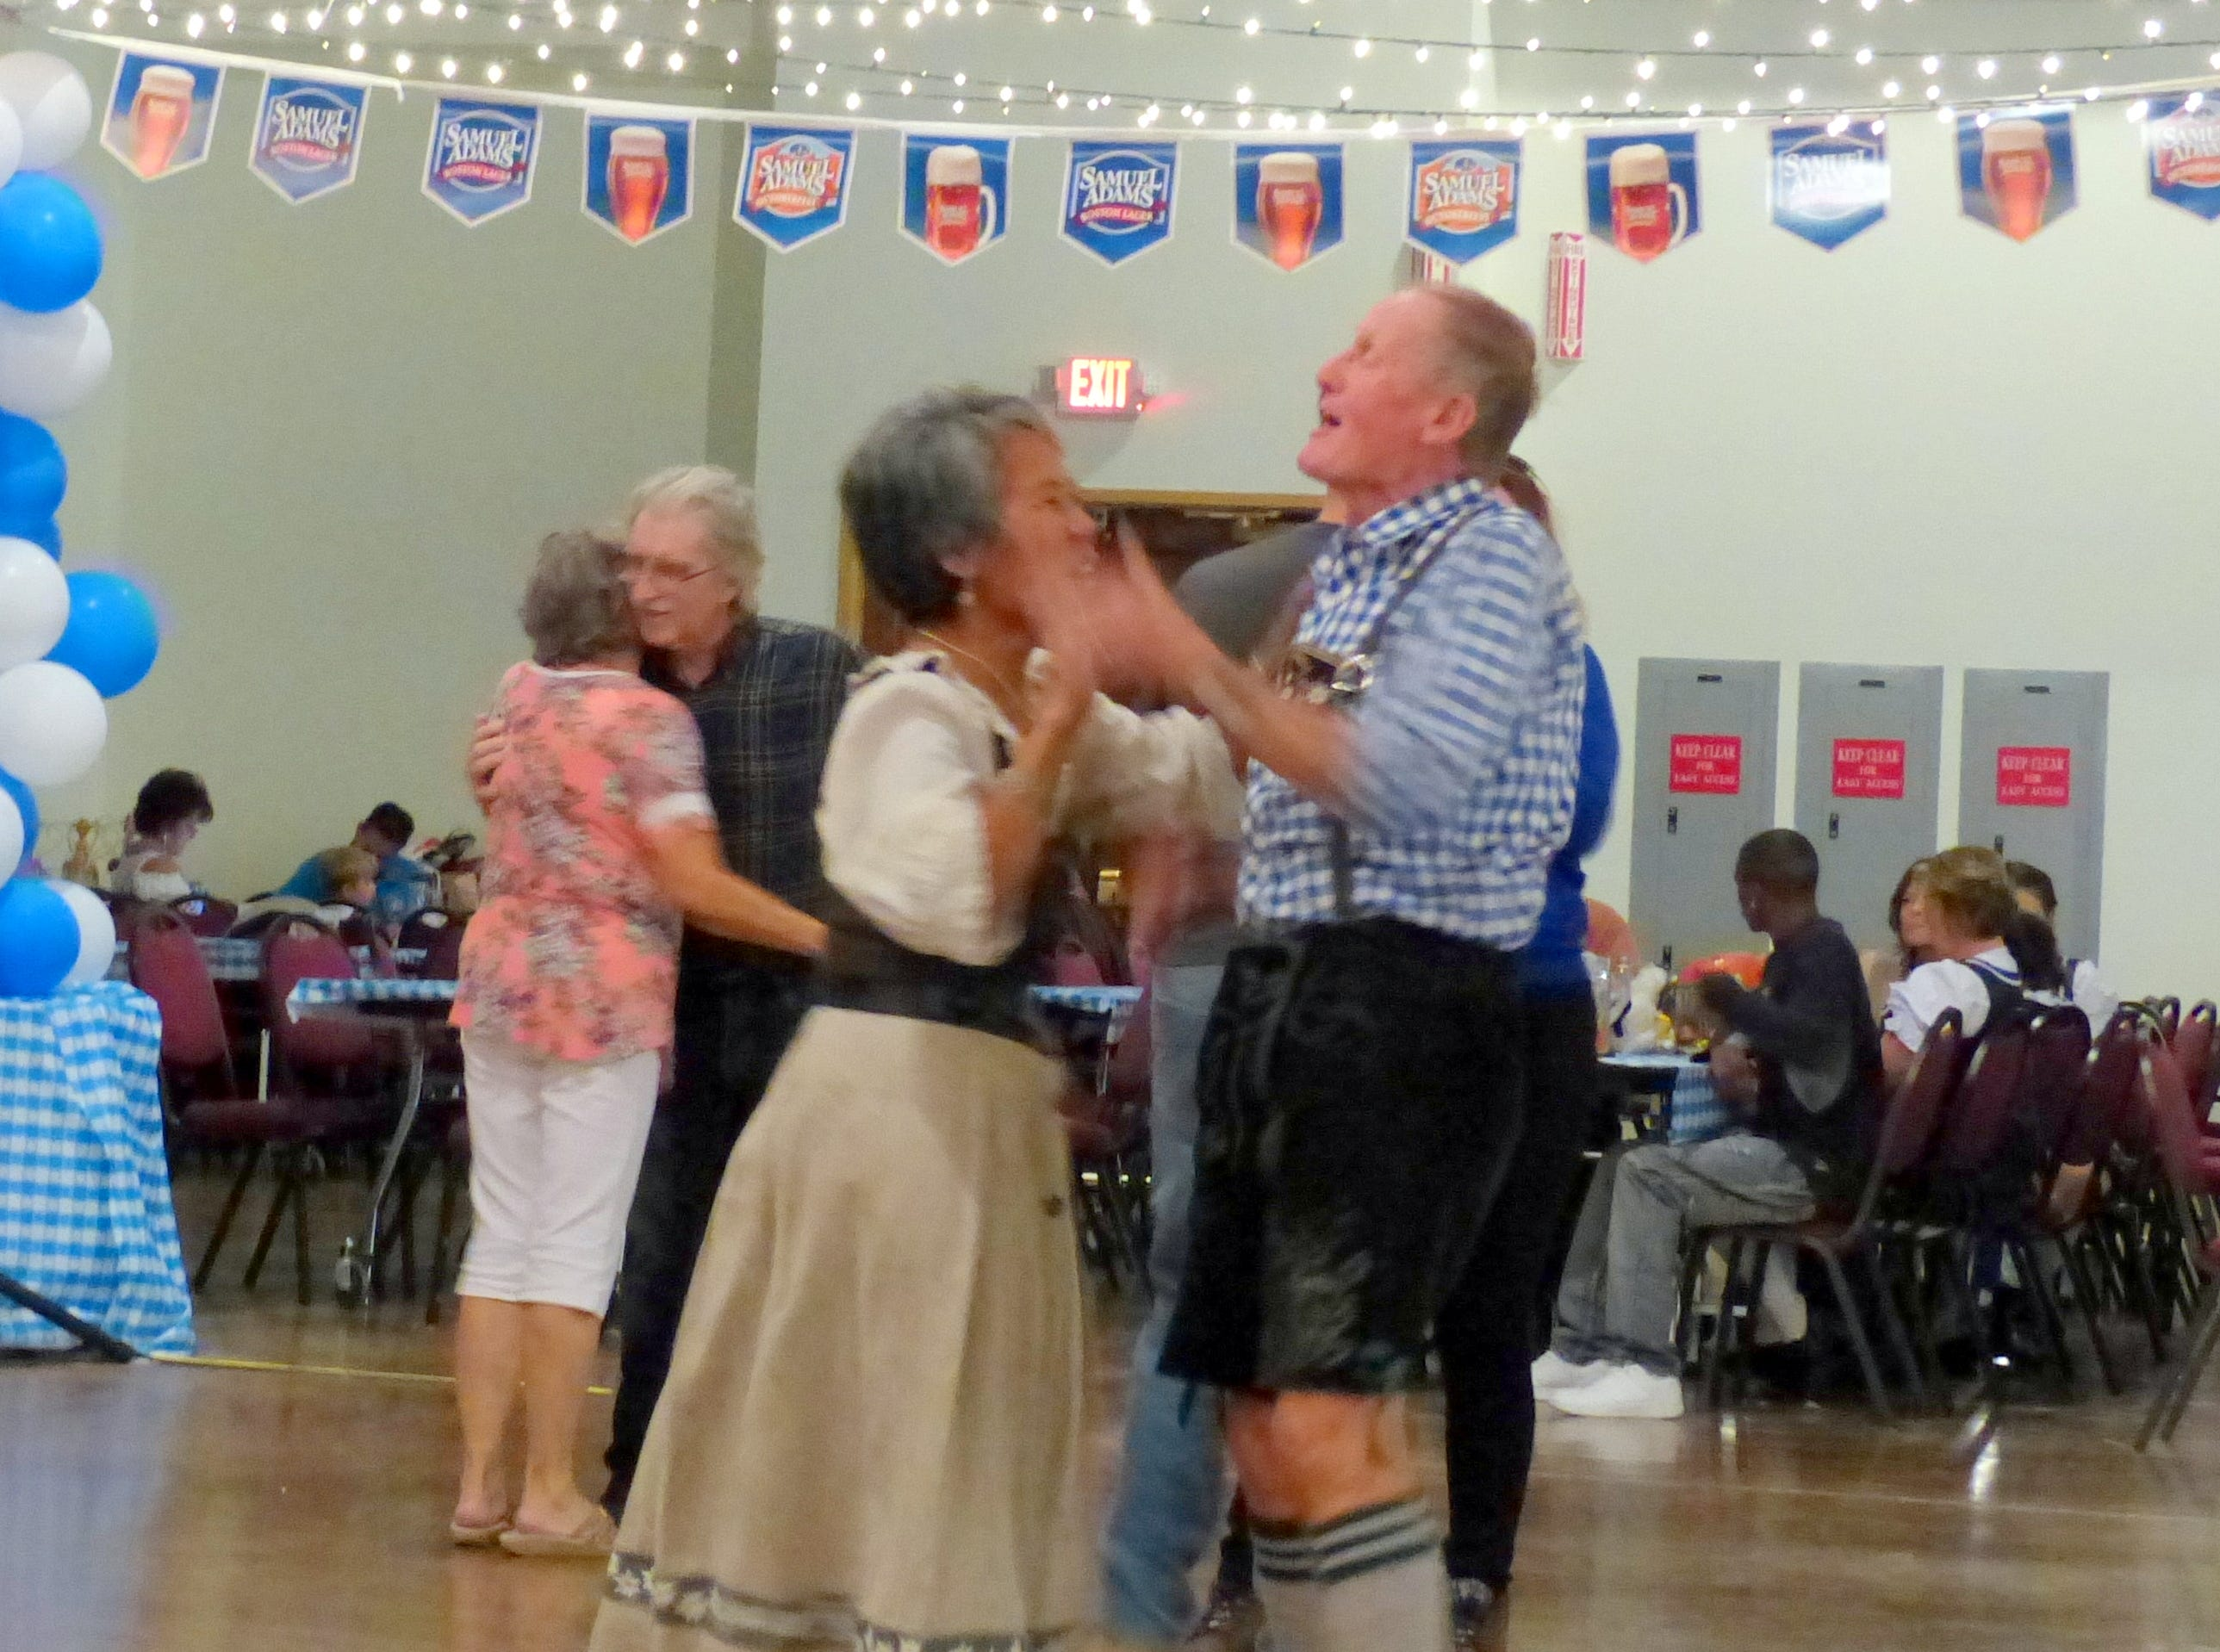 Dancing to the polka.